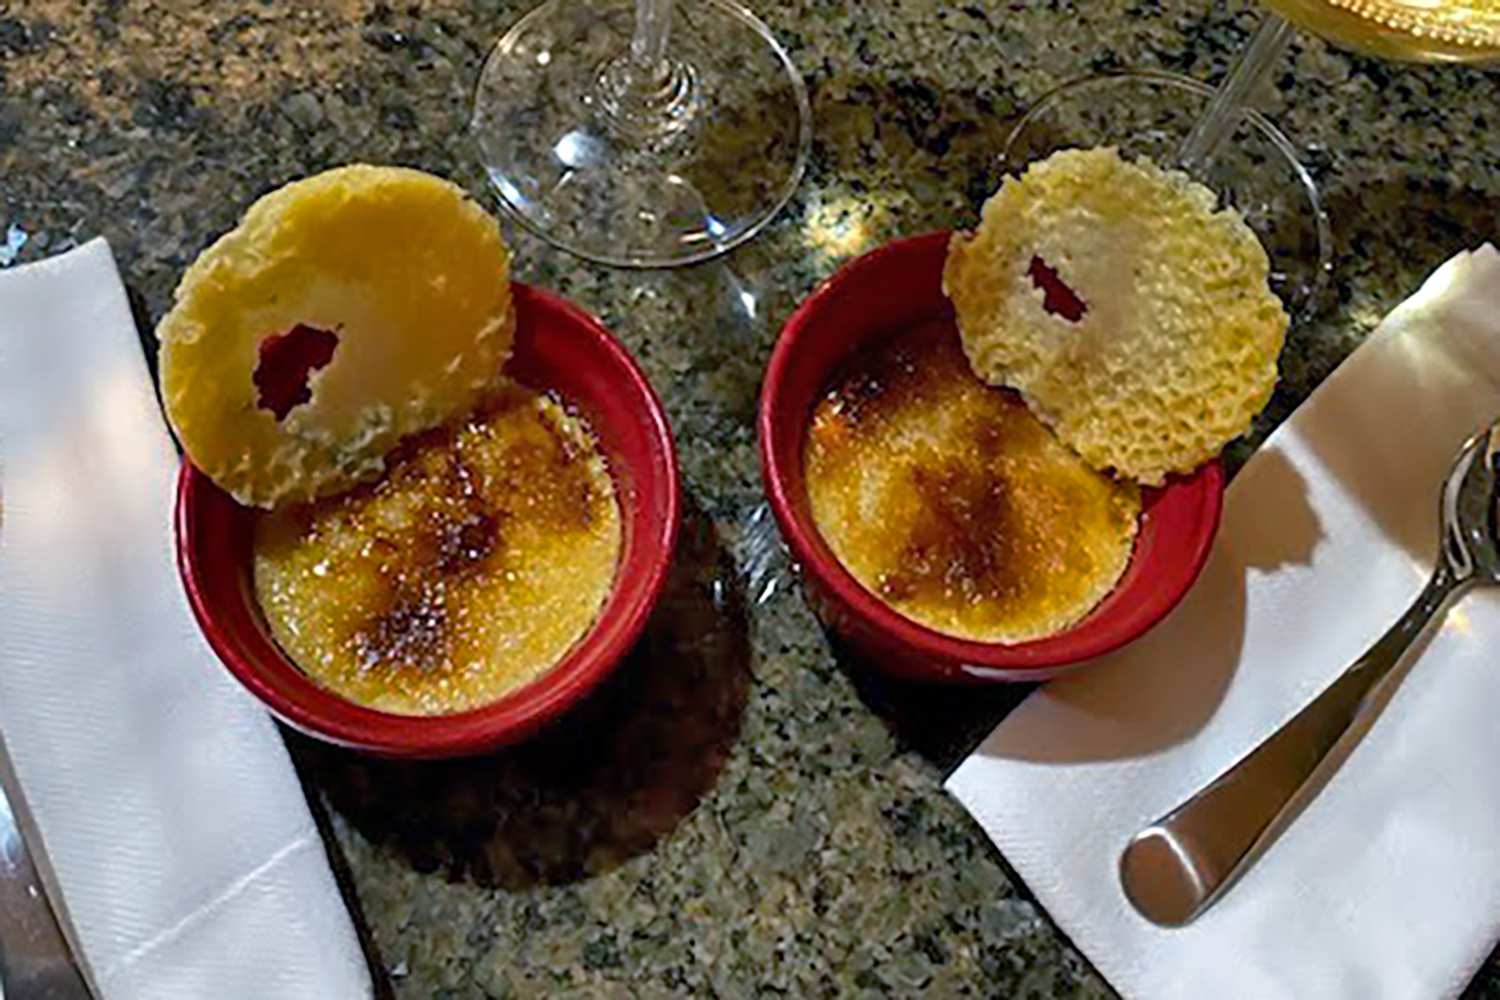 Rogue River Blue Crème Brulée with Cheese Tuile